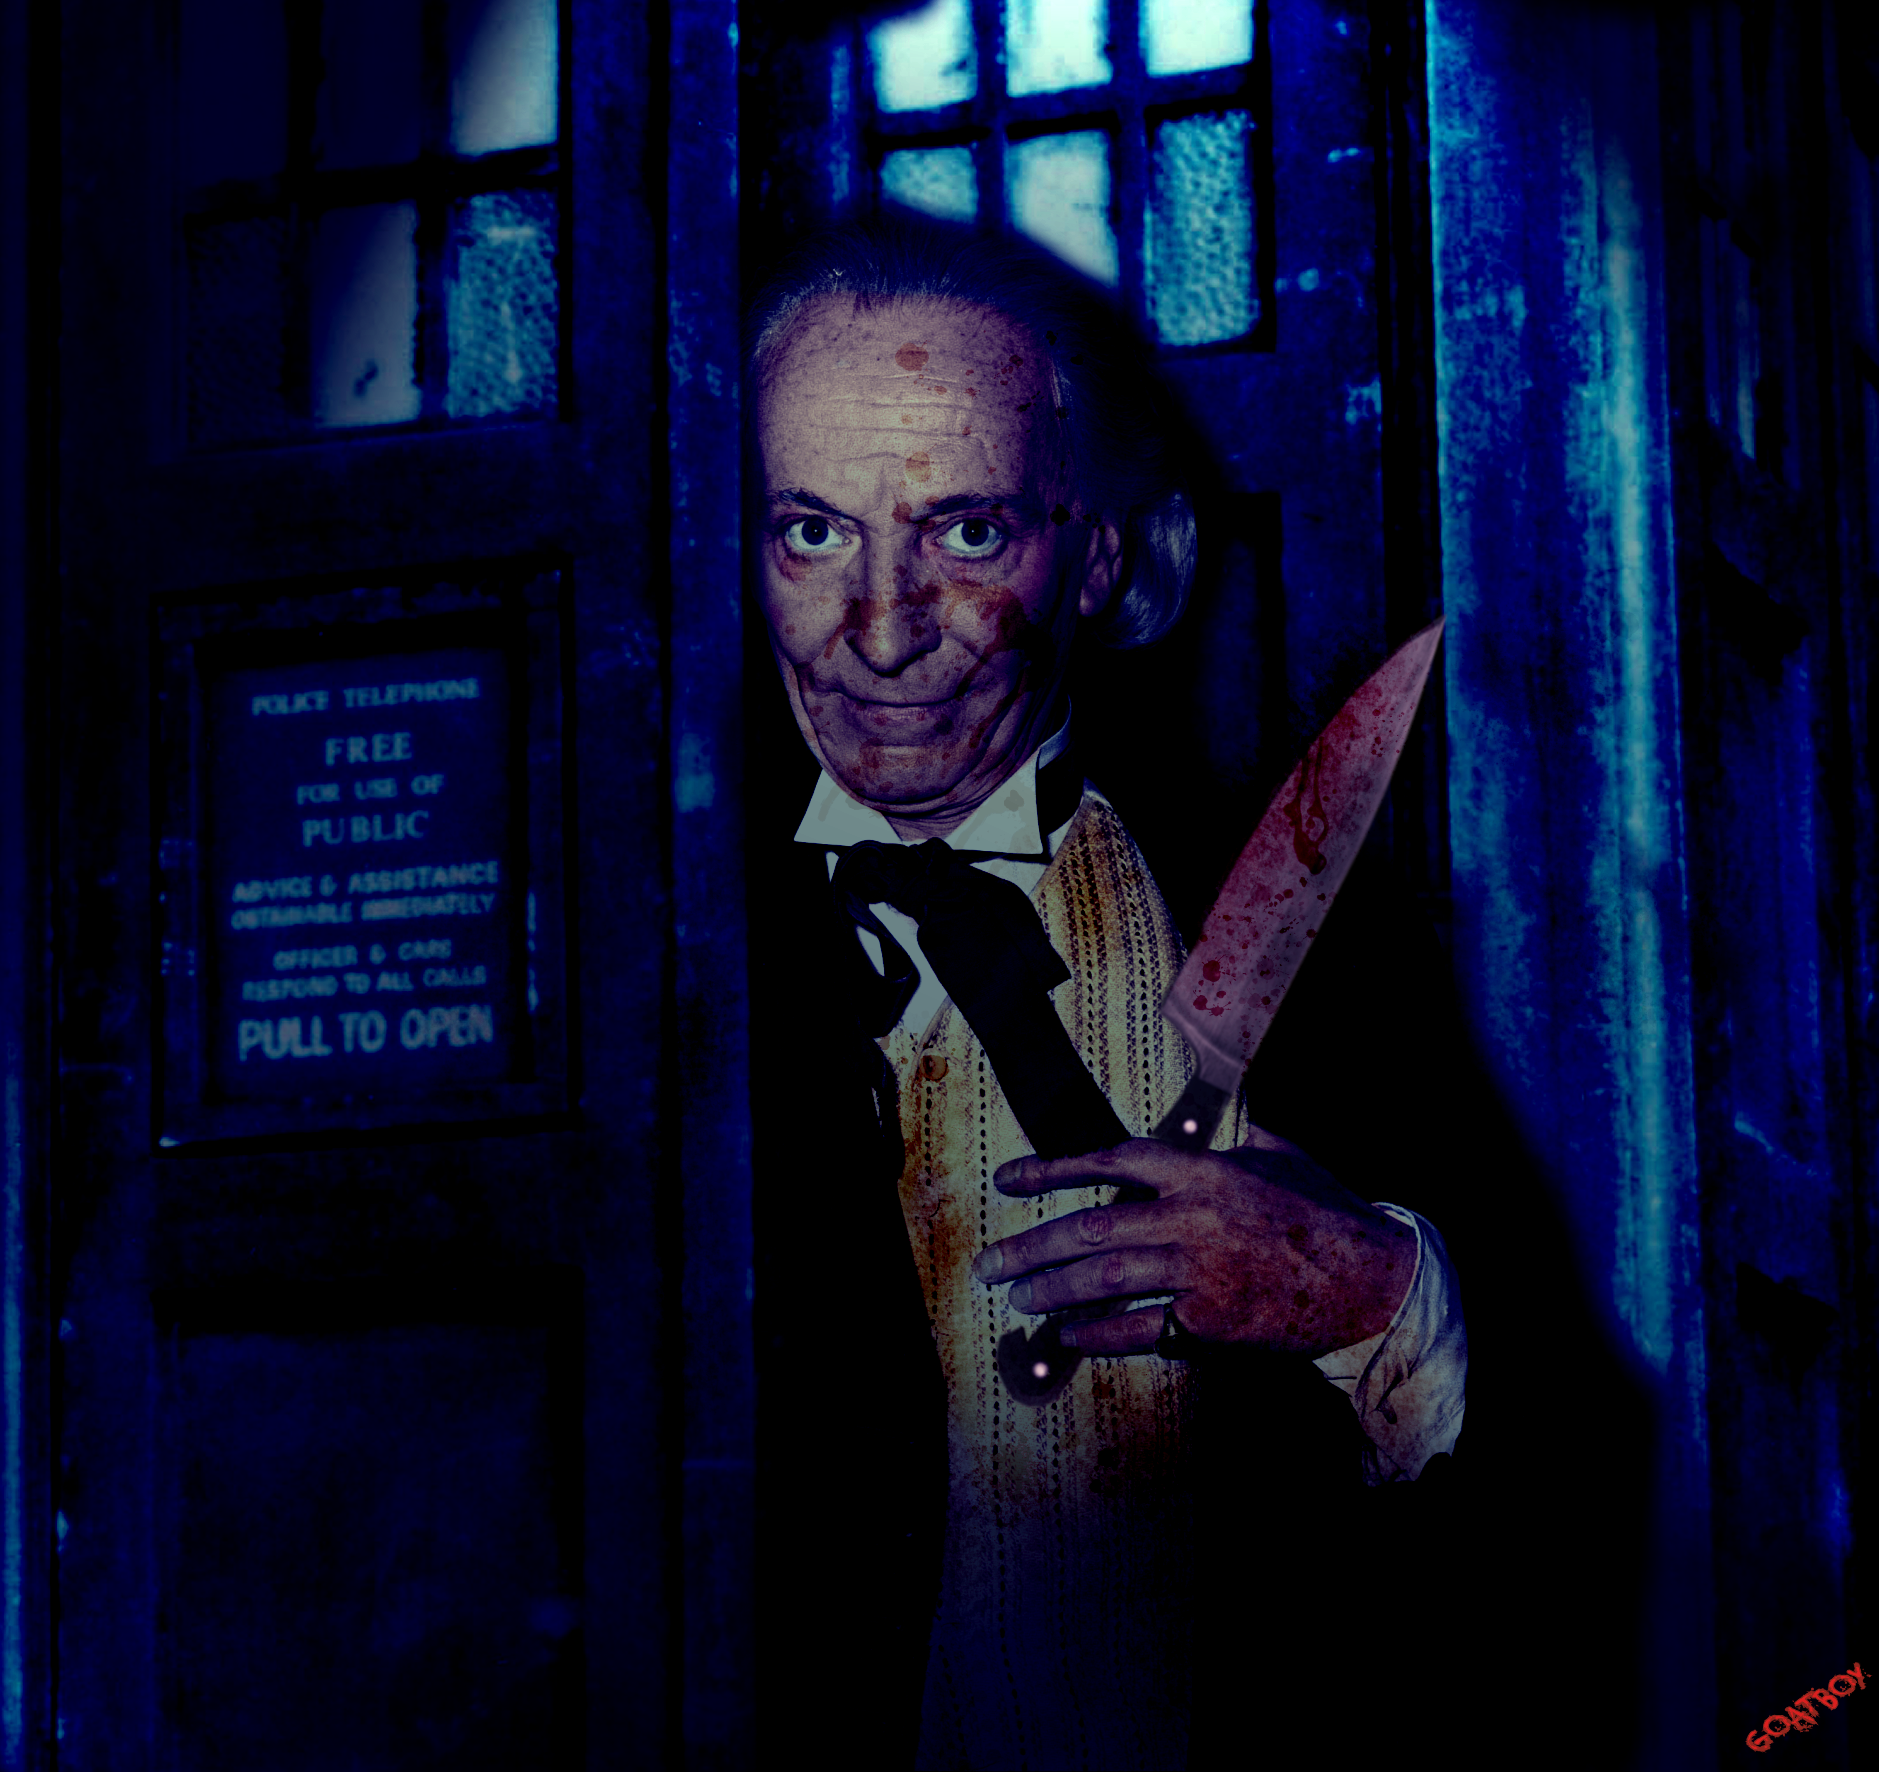 http://themoriartyofgore.files.wordpress.com/2013/02/dr-who-ripper.png